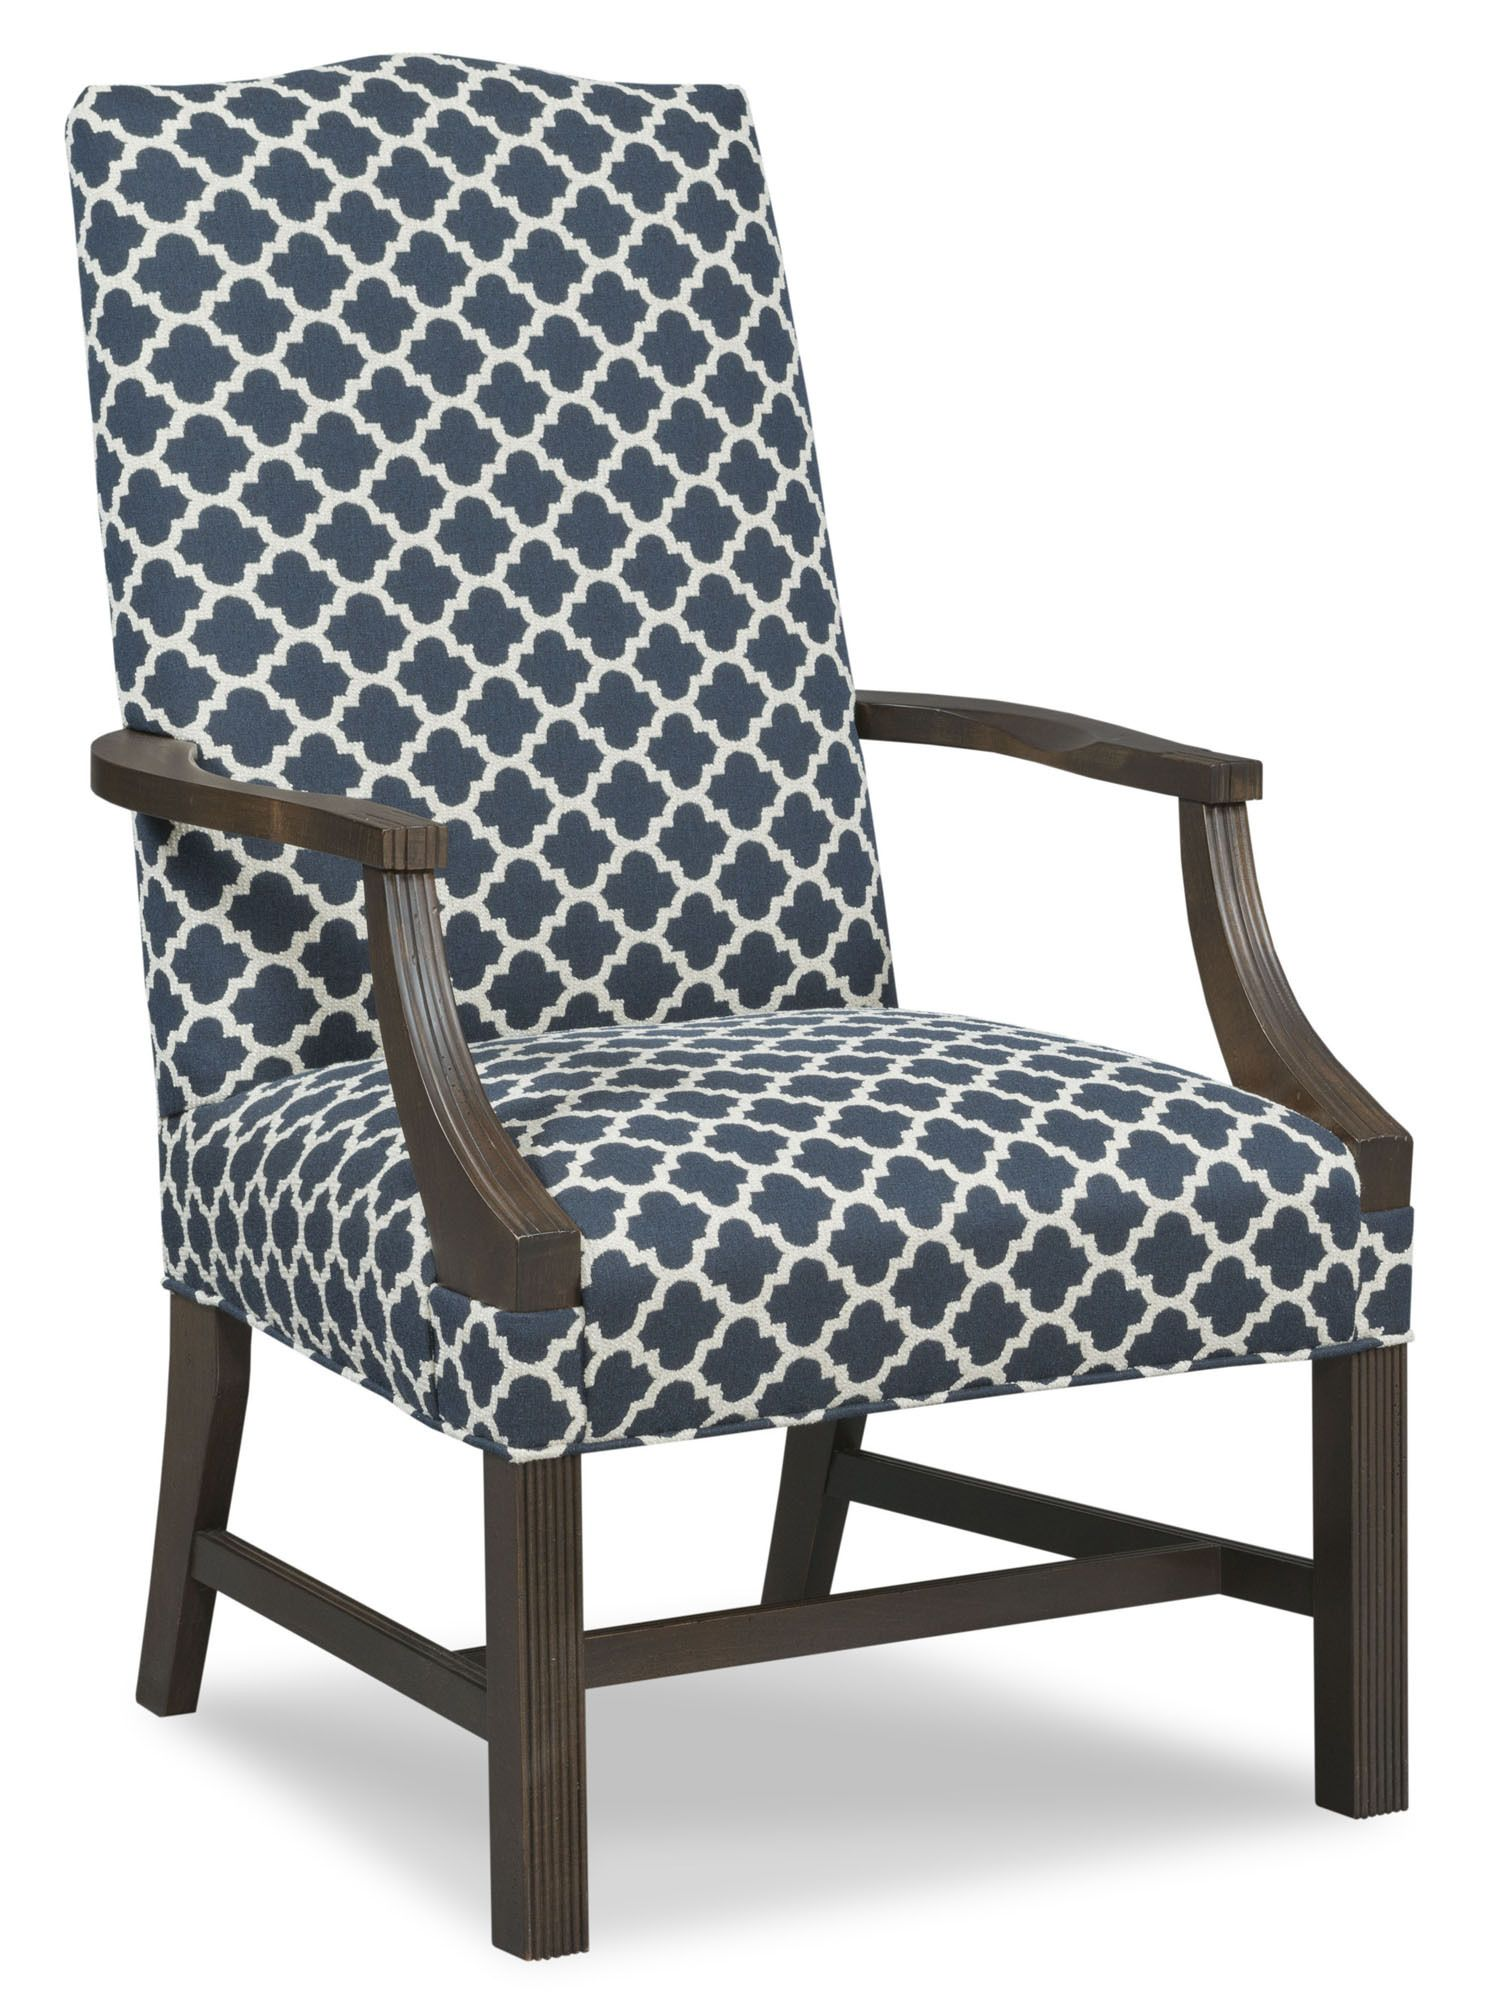 Fairfield Chairs Occasional Chair Fairfield Chair Company Home Gallery Stores